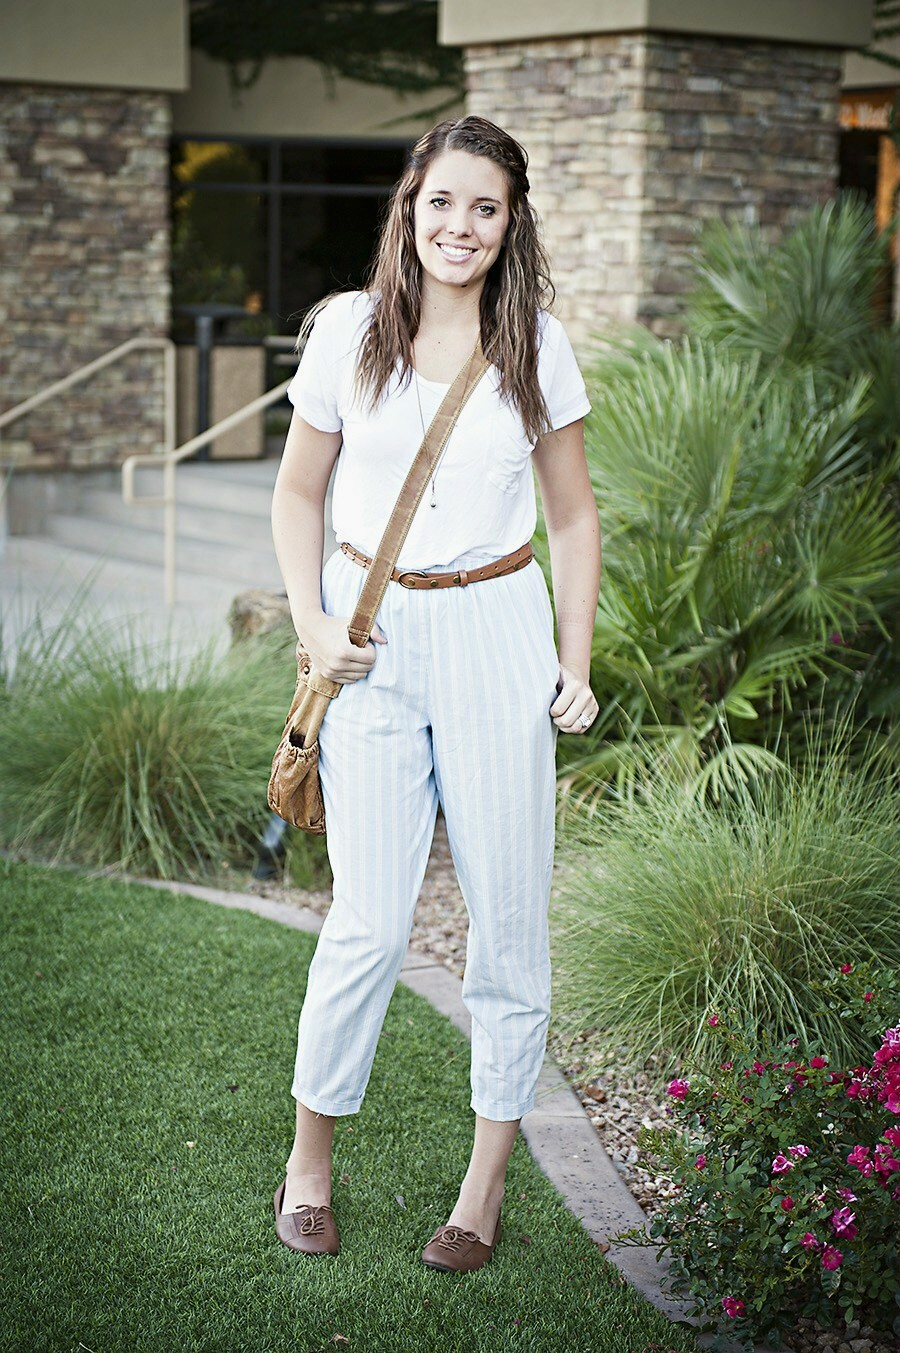 Brown Belt, Striped pants, White top